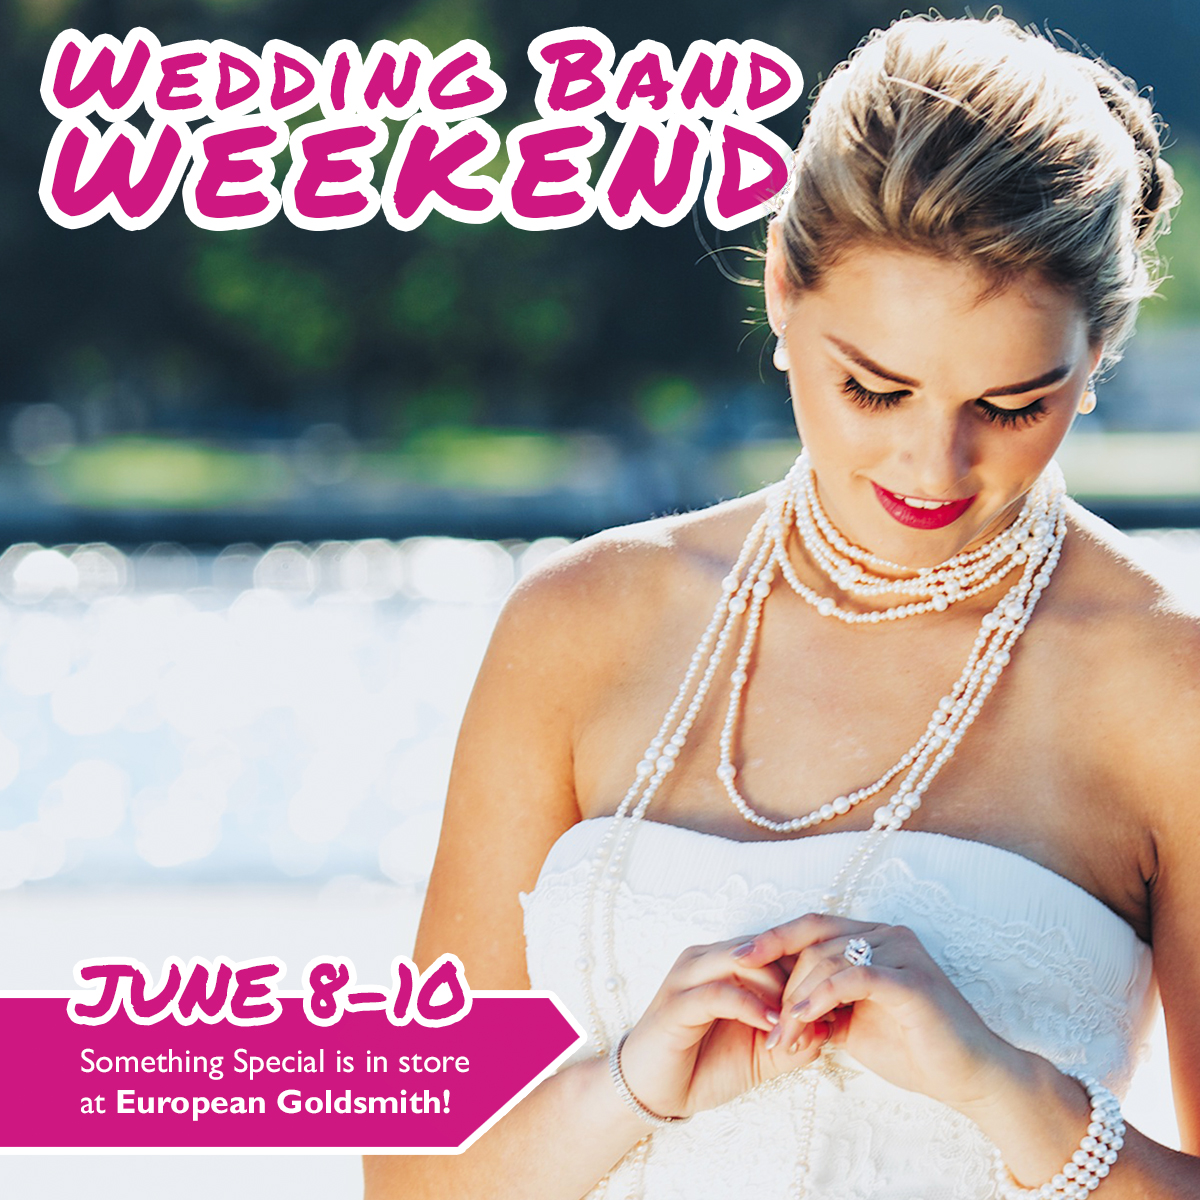 Wedding Band Weekend - Kelowna Jewellery Store, European Goldsmith